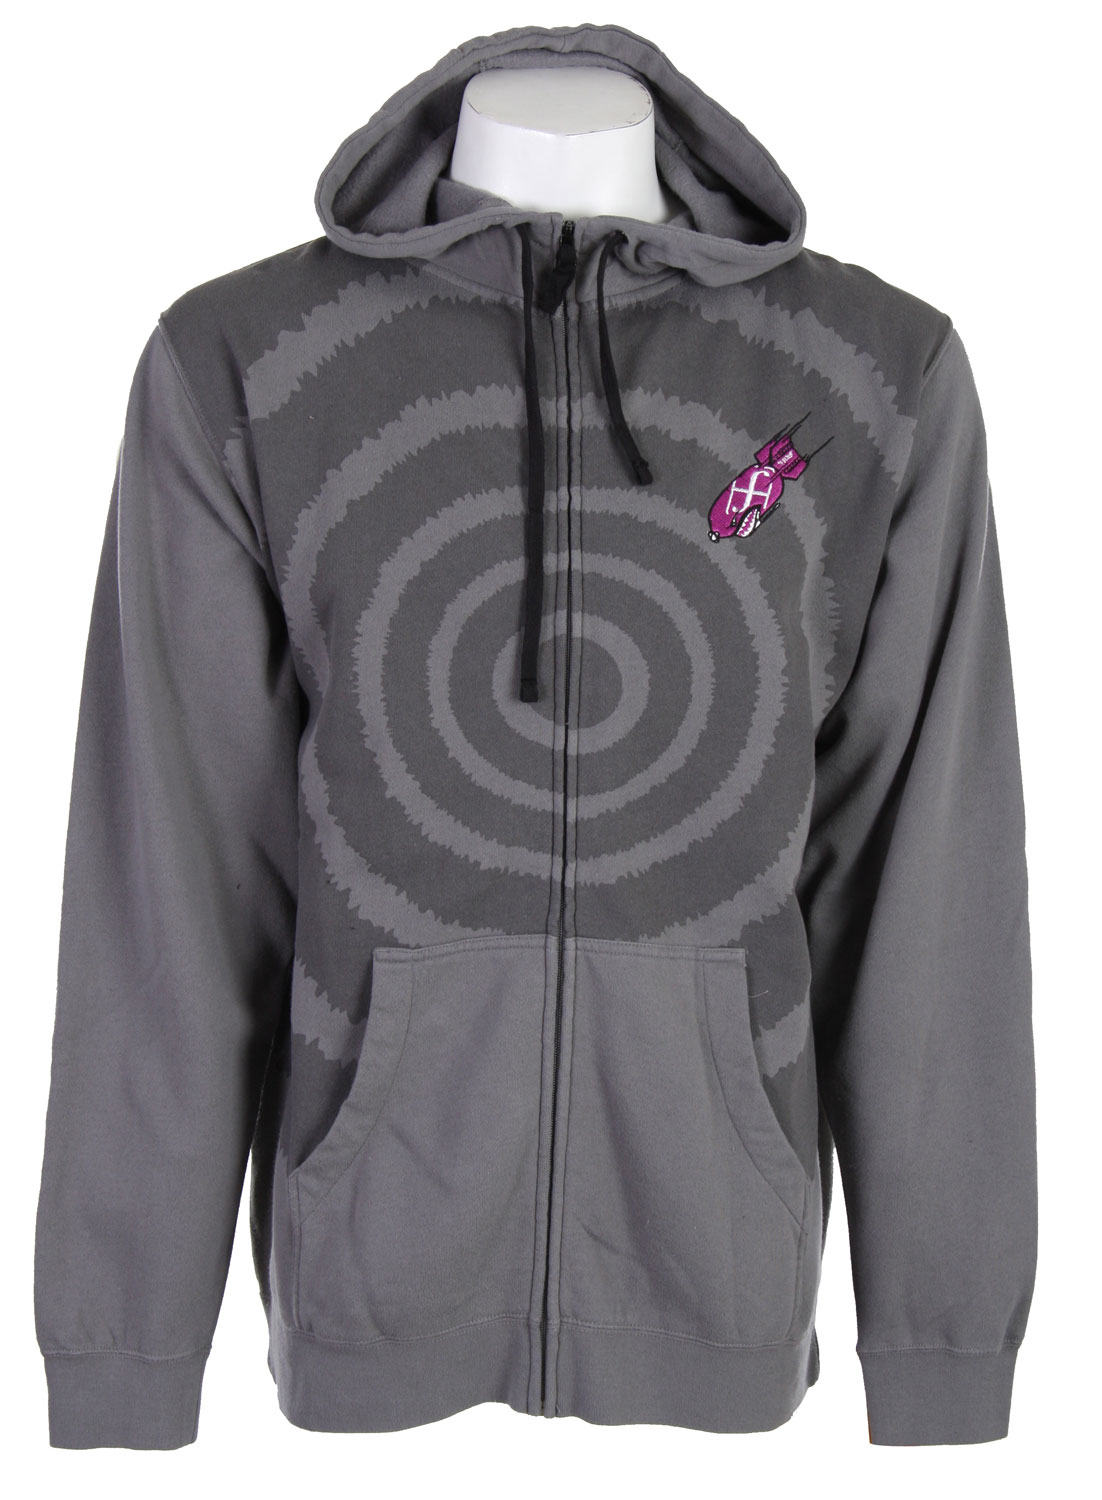 Feel like you always have a target on your chest? Well with this Forum Target Hoodie you actually will. You will have a giant target on your chest, it won't be nothing your not used to. The design is simple and that's what makes it so good looking, it's not to edgy and crazy. It conveniently zips up so you don't have to worry about pulling the sweater over your head all the time and messing up your perfect hair. It offers a ton of warmth in a small package and will have you prepared for those lack luster nights out on the lake or by the campfire.Key Features of The Forum Target Hoodie: Zip hooded sweatshirt 80% Cotton 20% Polyester Regular fit Stone washed High collar sweatshirt Chest embroidery Hidden mp3 pocket - $31.85